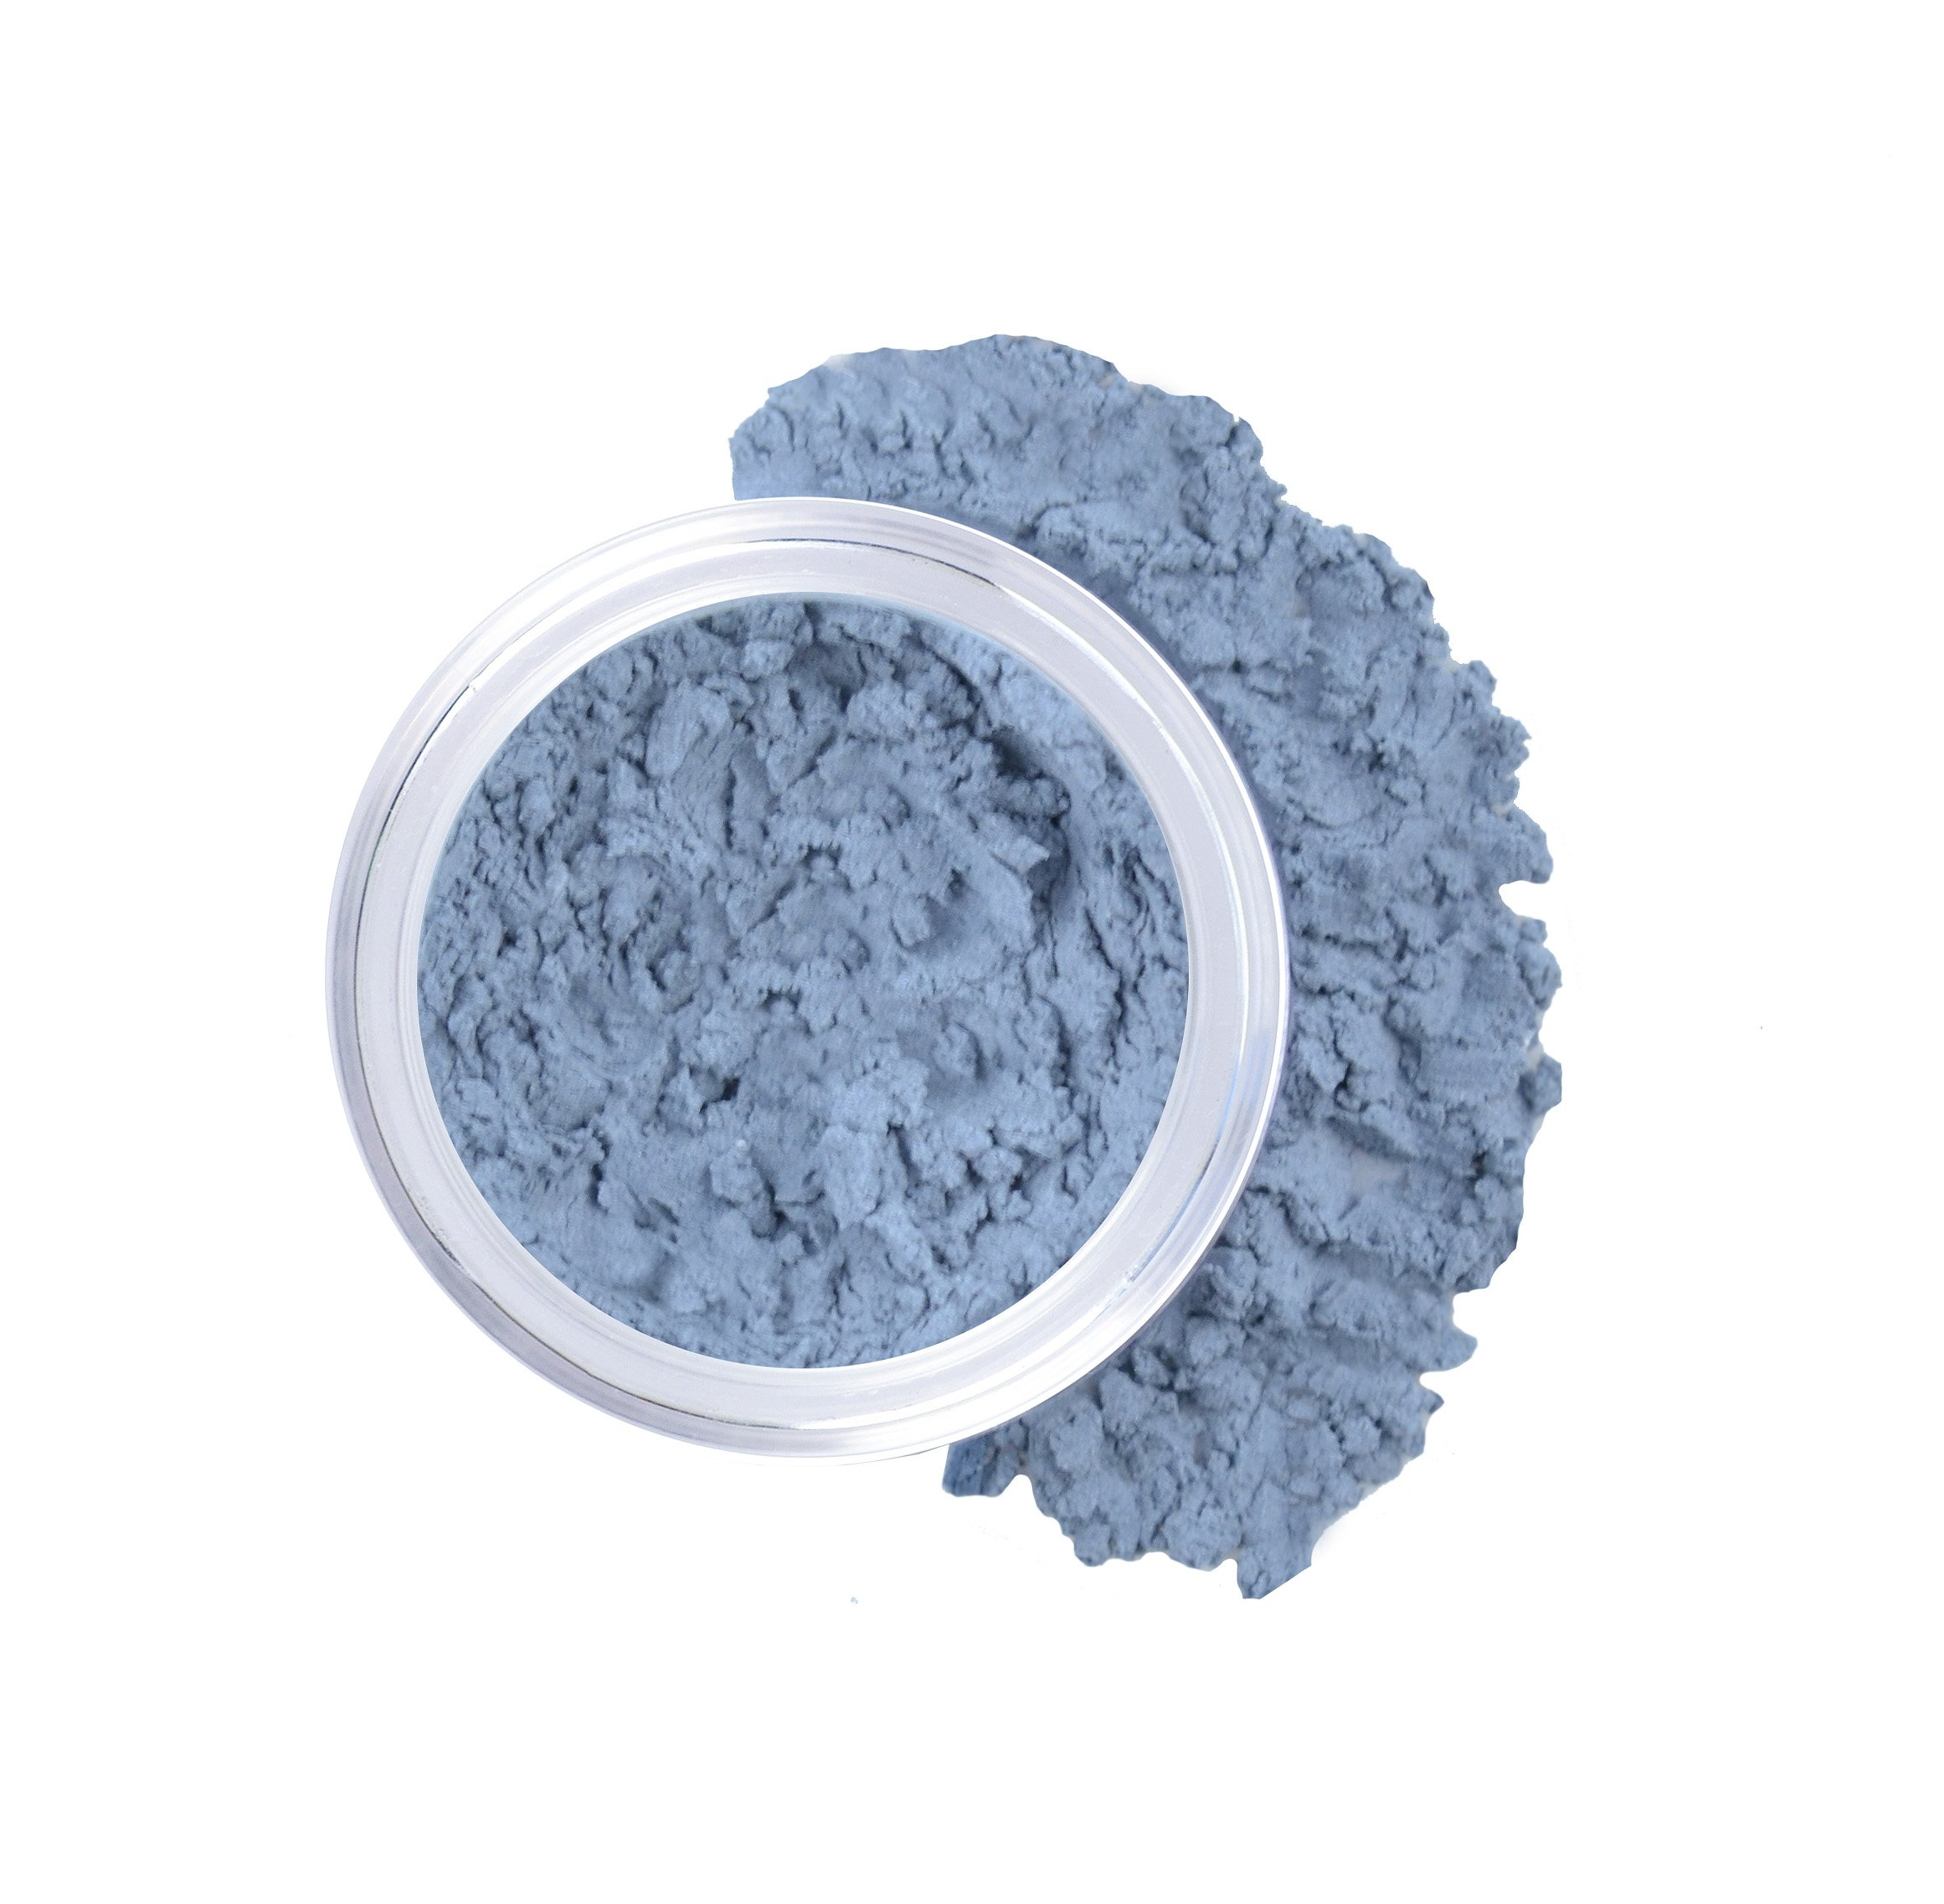 Bella Terra - Matte Shimmer - Matte Eyeshadow - Natural Makeup (Sky Blue)